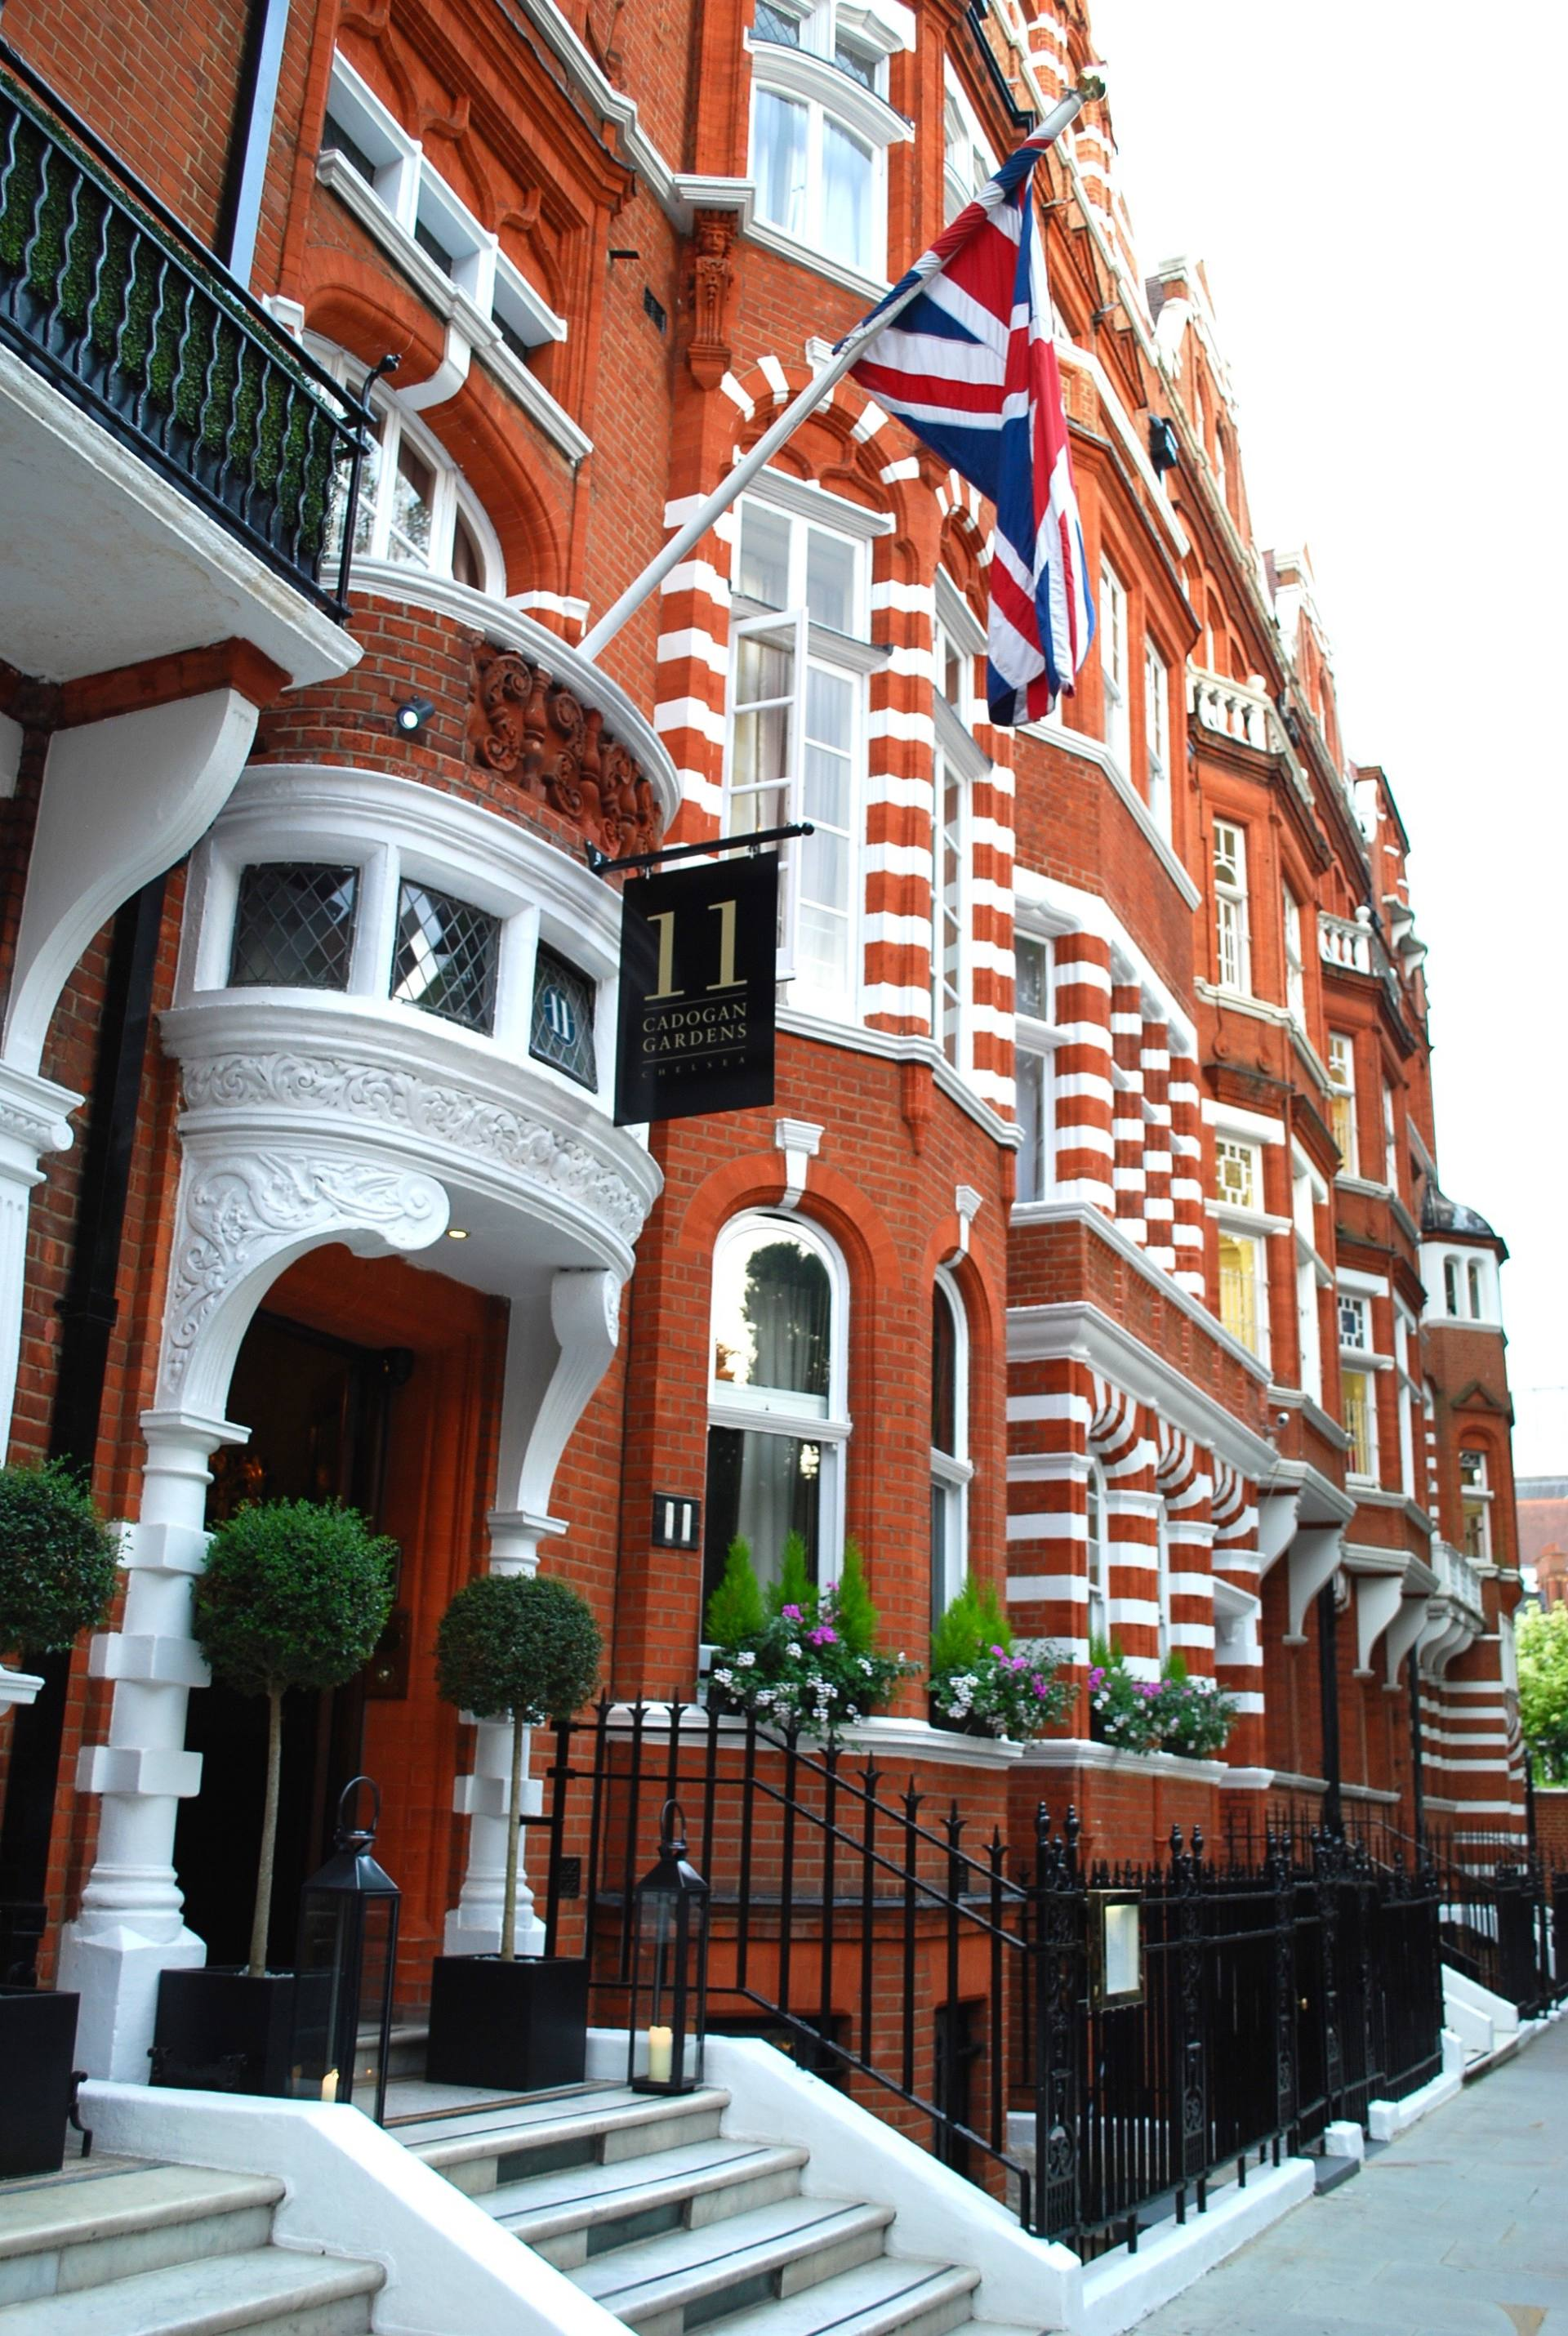 Chelsea's Hidden Gem: 11 Cadogan Gardens, London